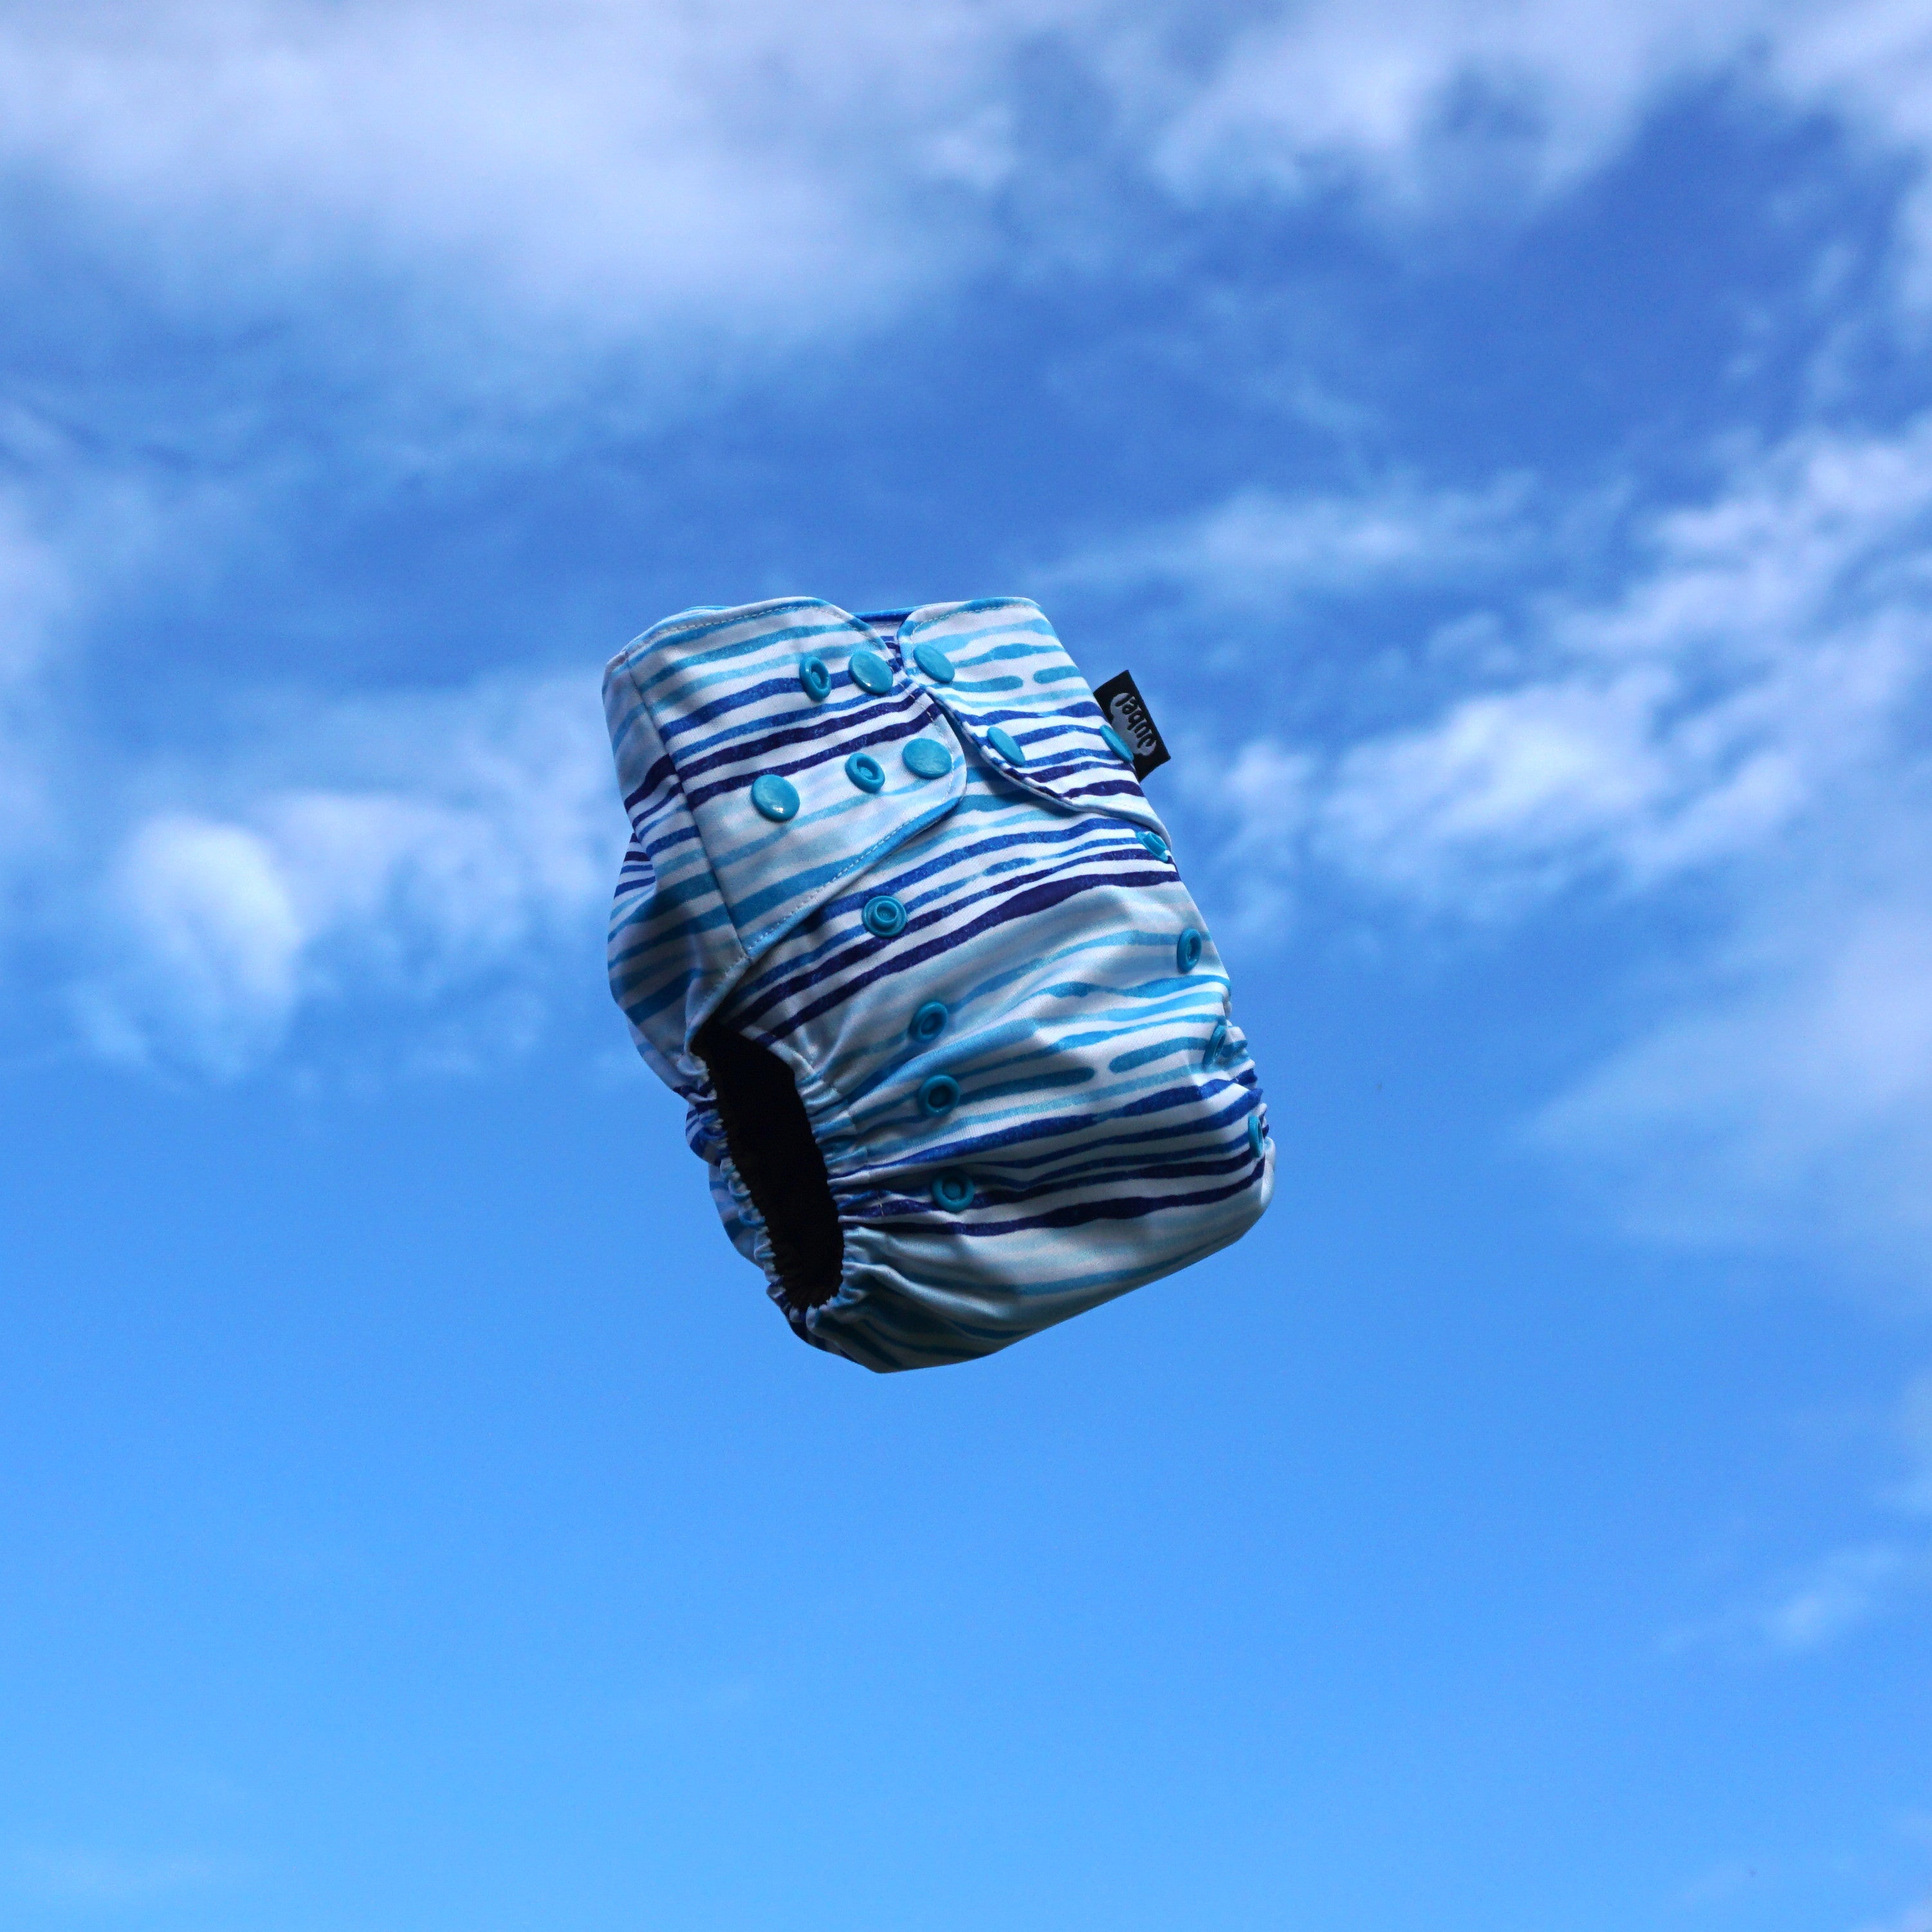 JUBEL Classic reusable nappy colour HIMMEL flying mid air